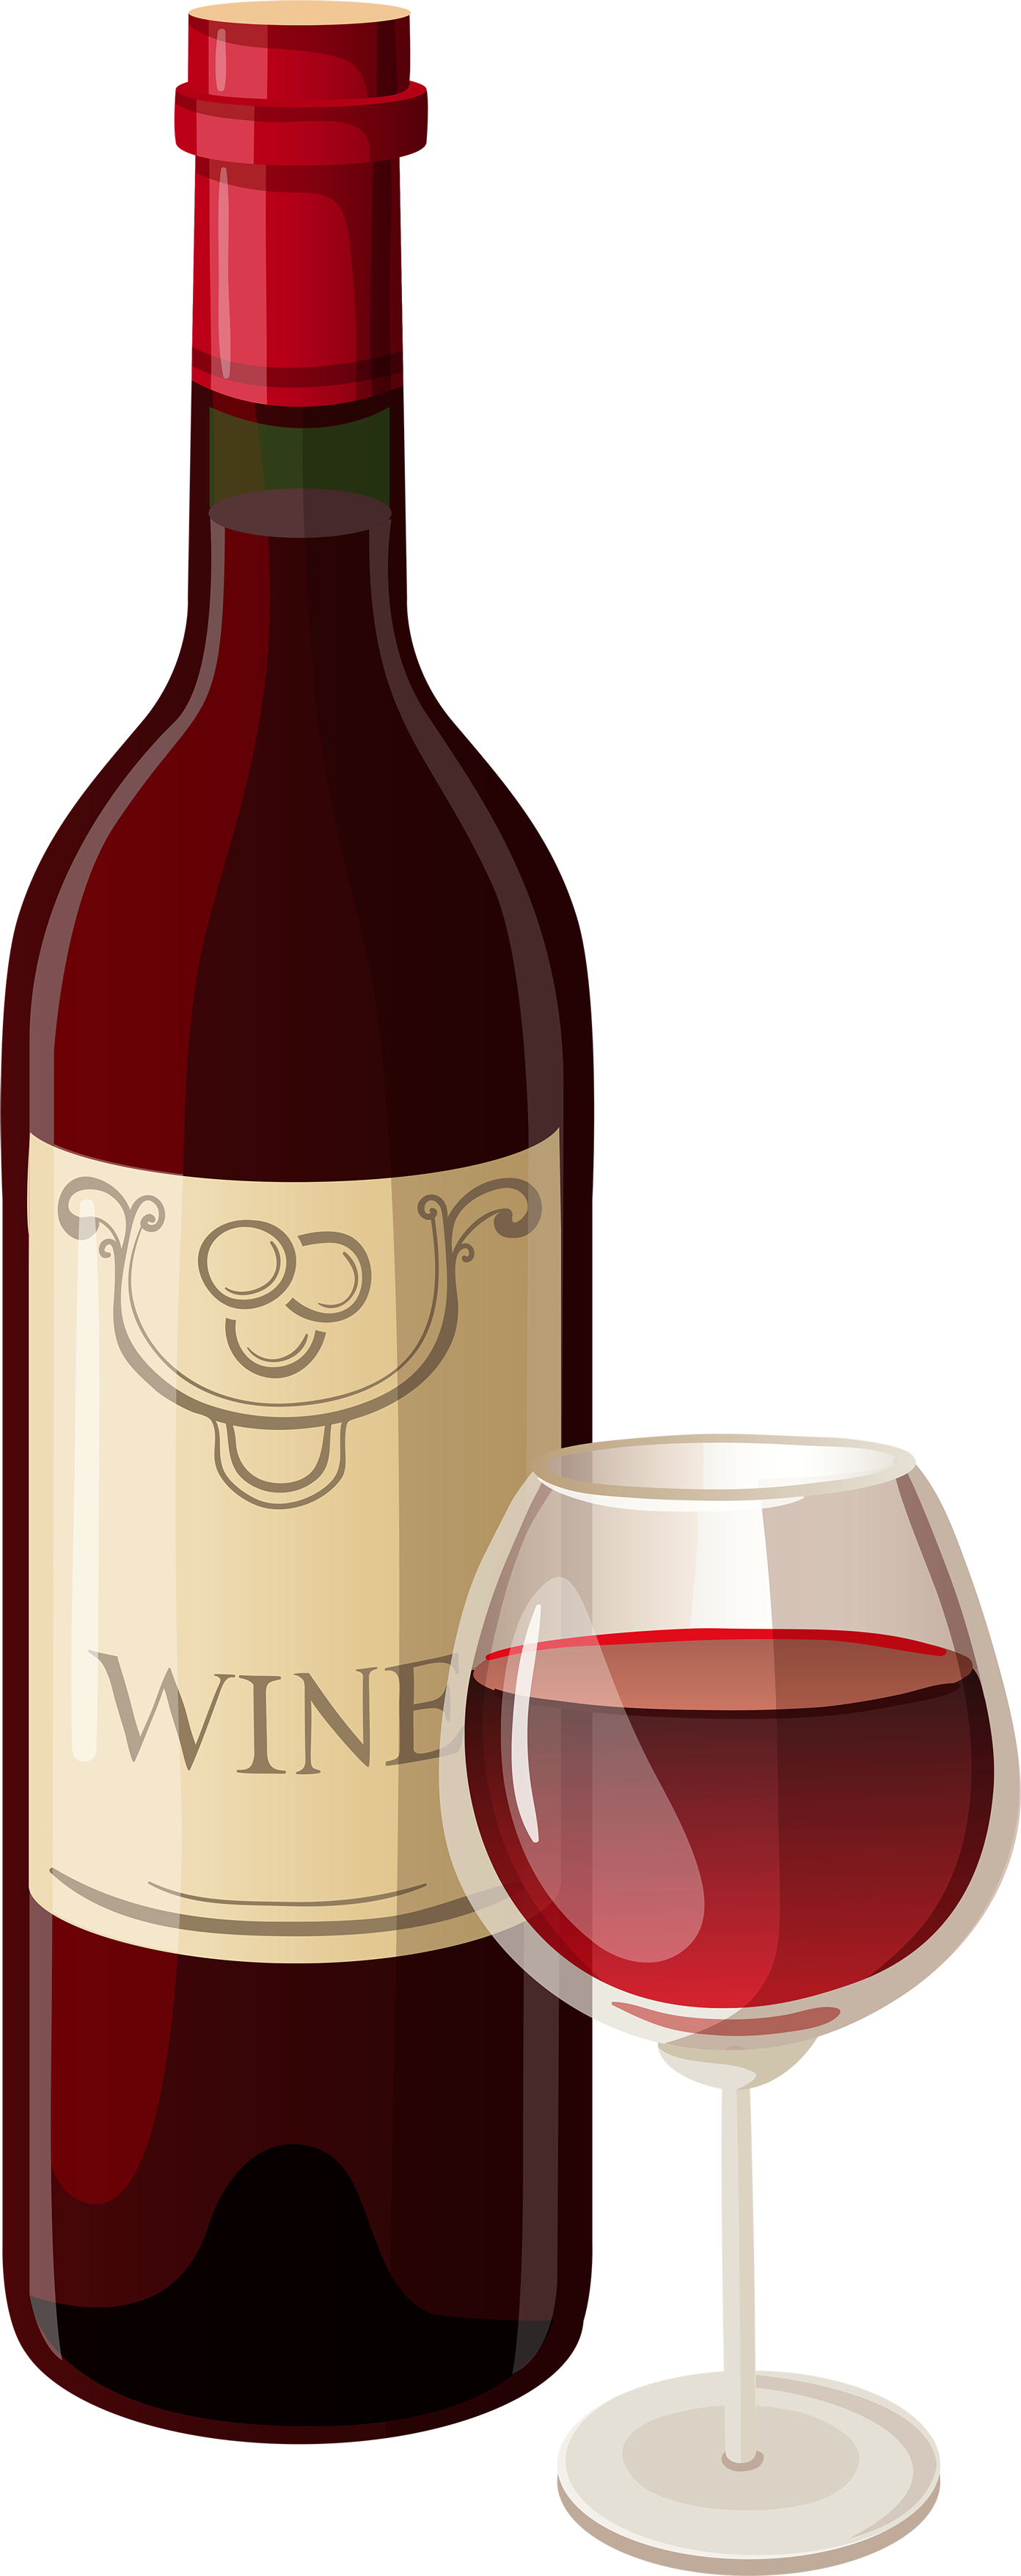 Wine bottle clip art png. Images free download glass